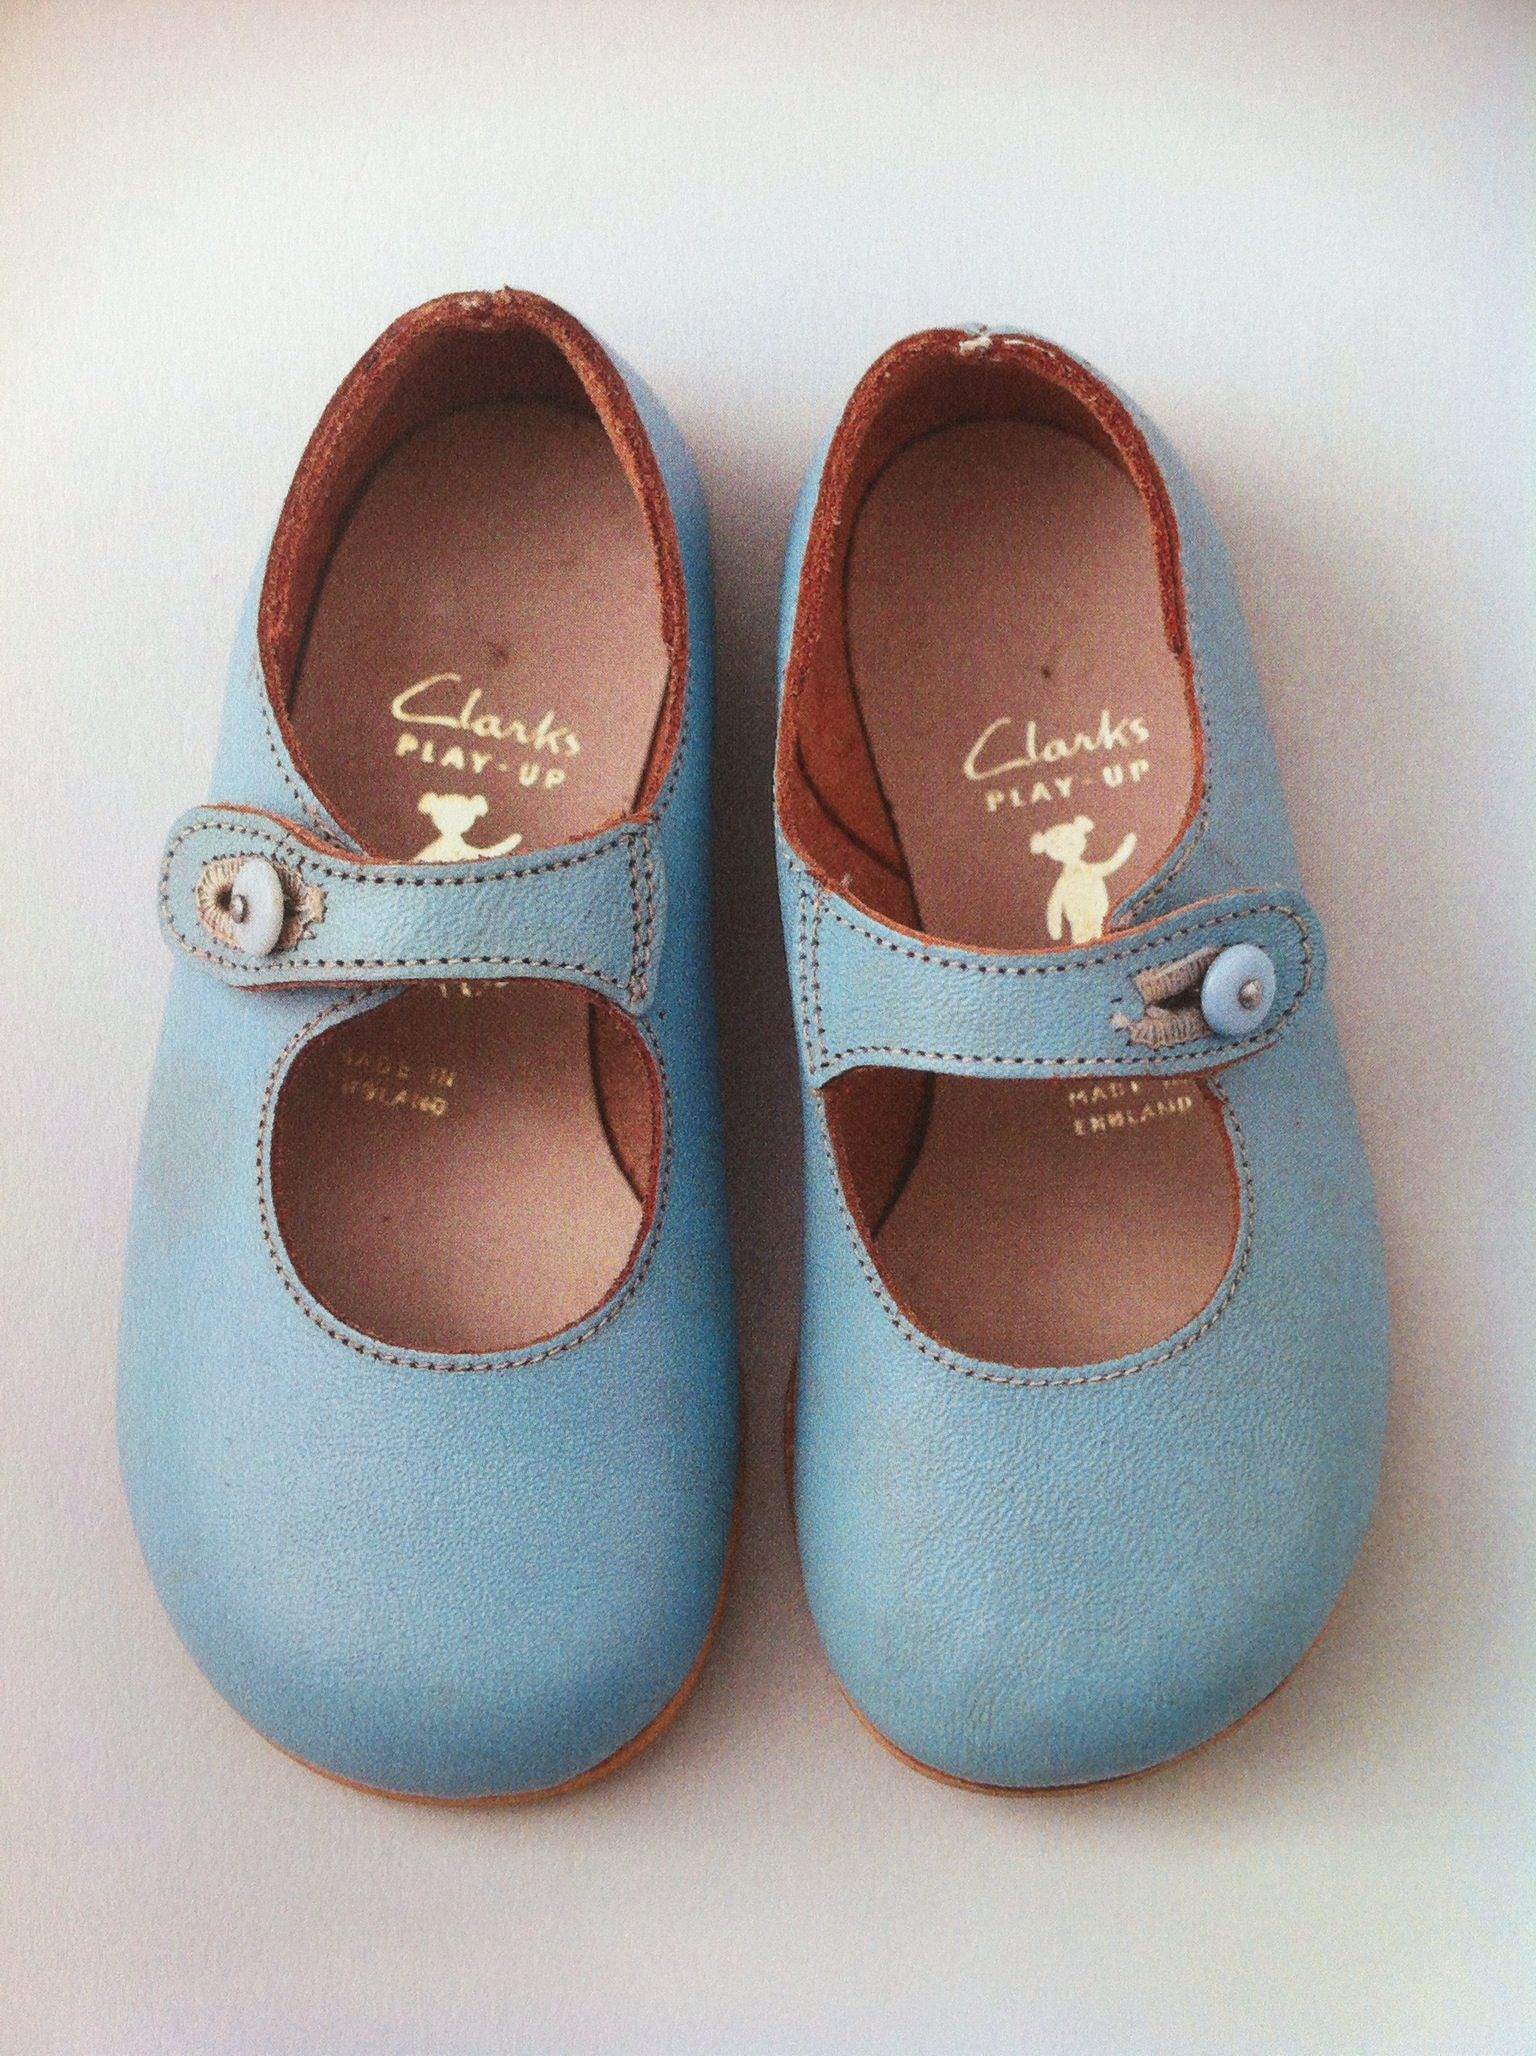 clarks baby girl shoes size